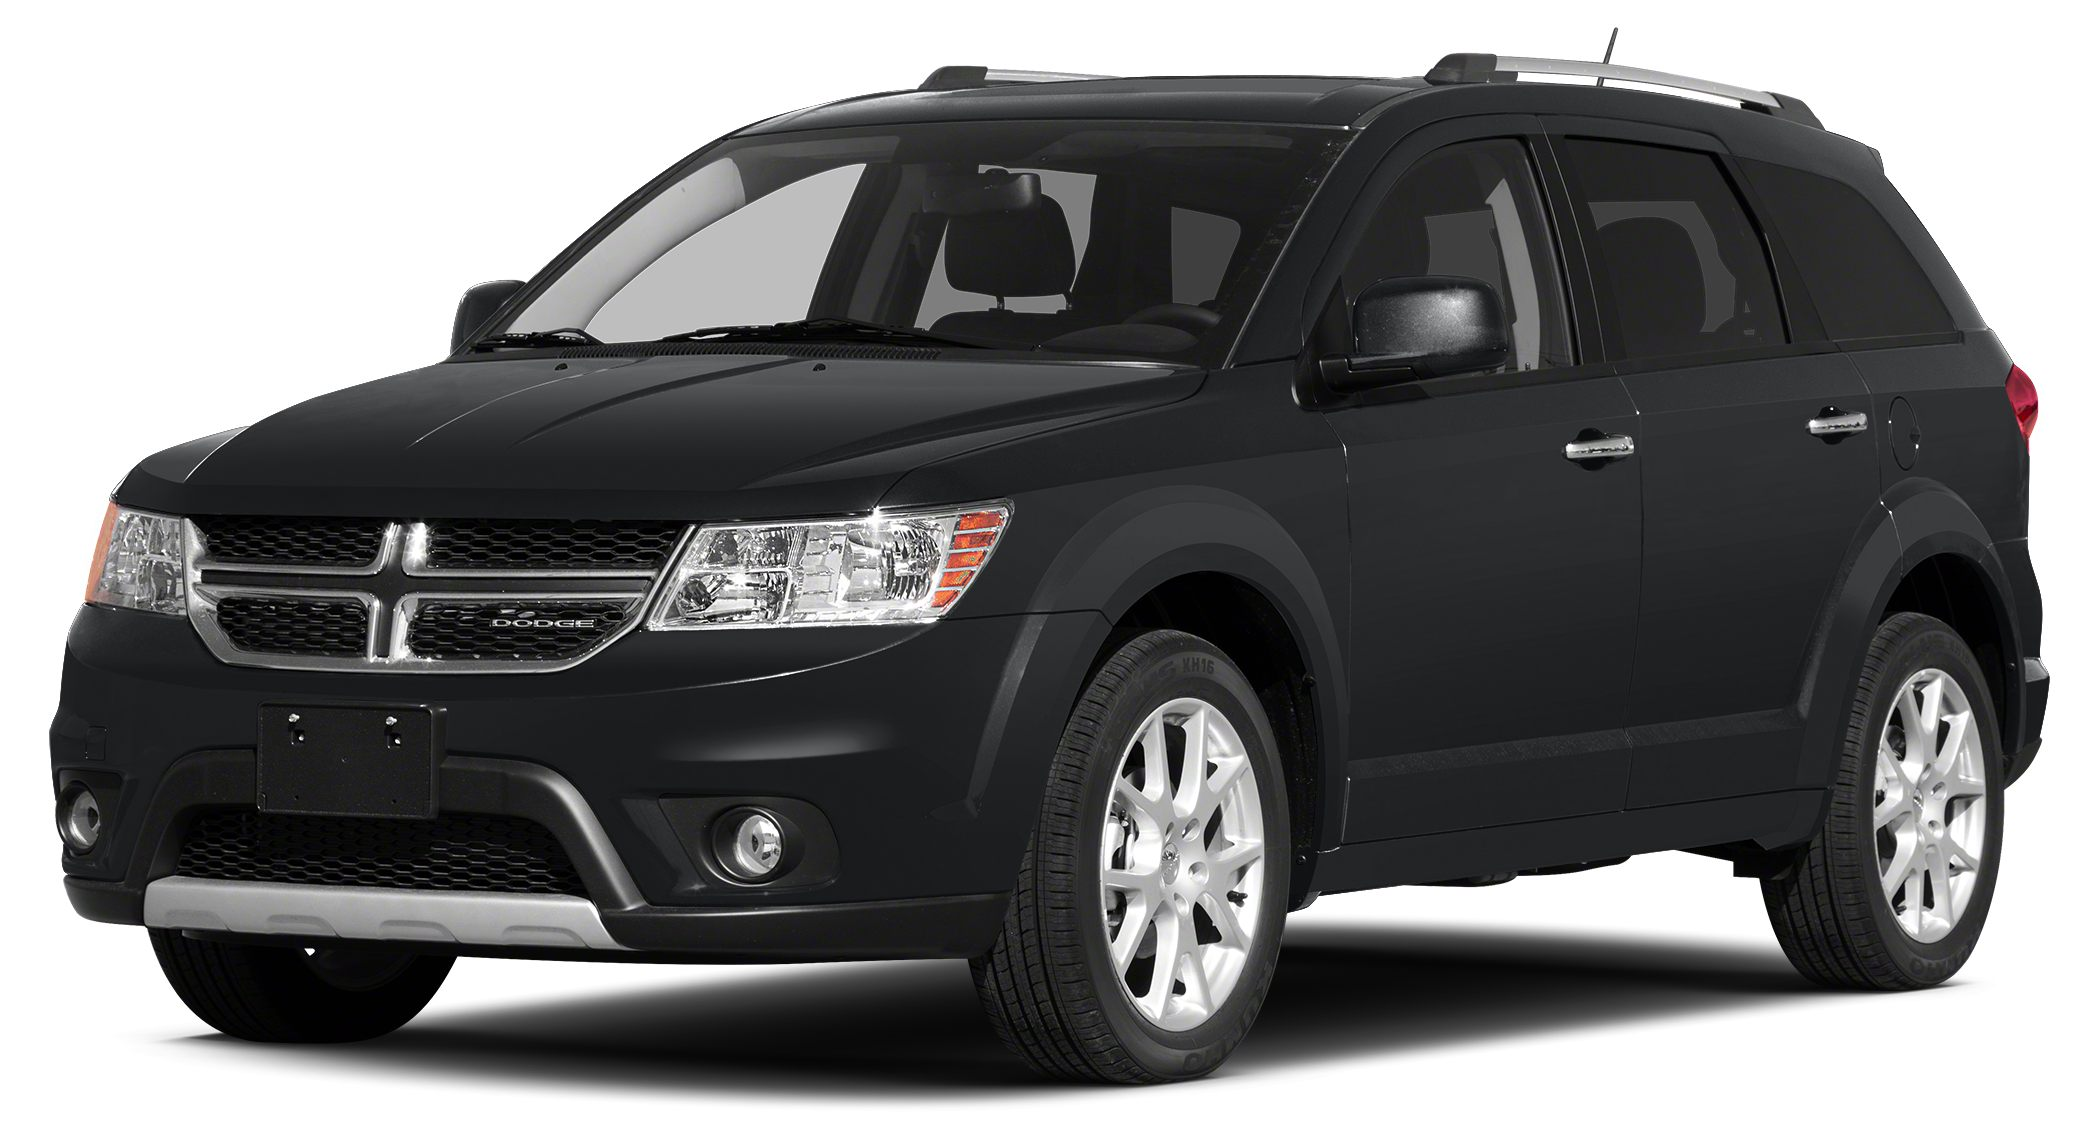 2014 Dodge Journey RT Oh yeah Yeah baby Creampuff This attractive 2014 Dodge Journey is not go